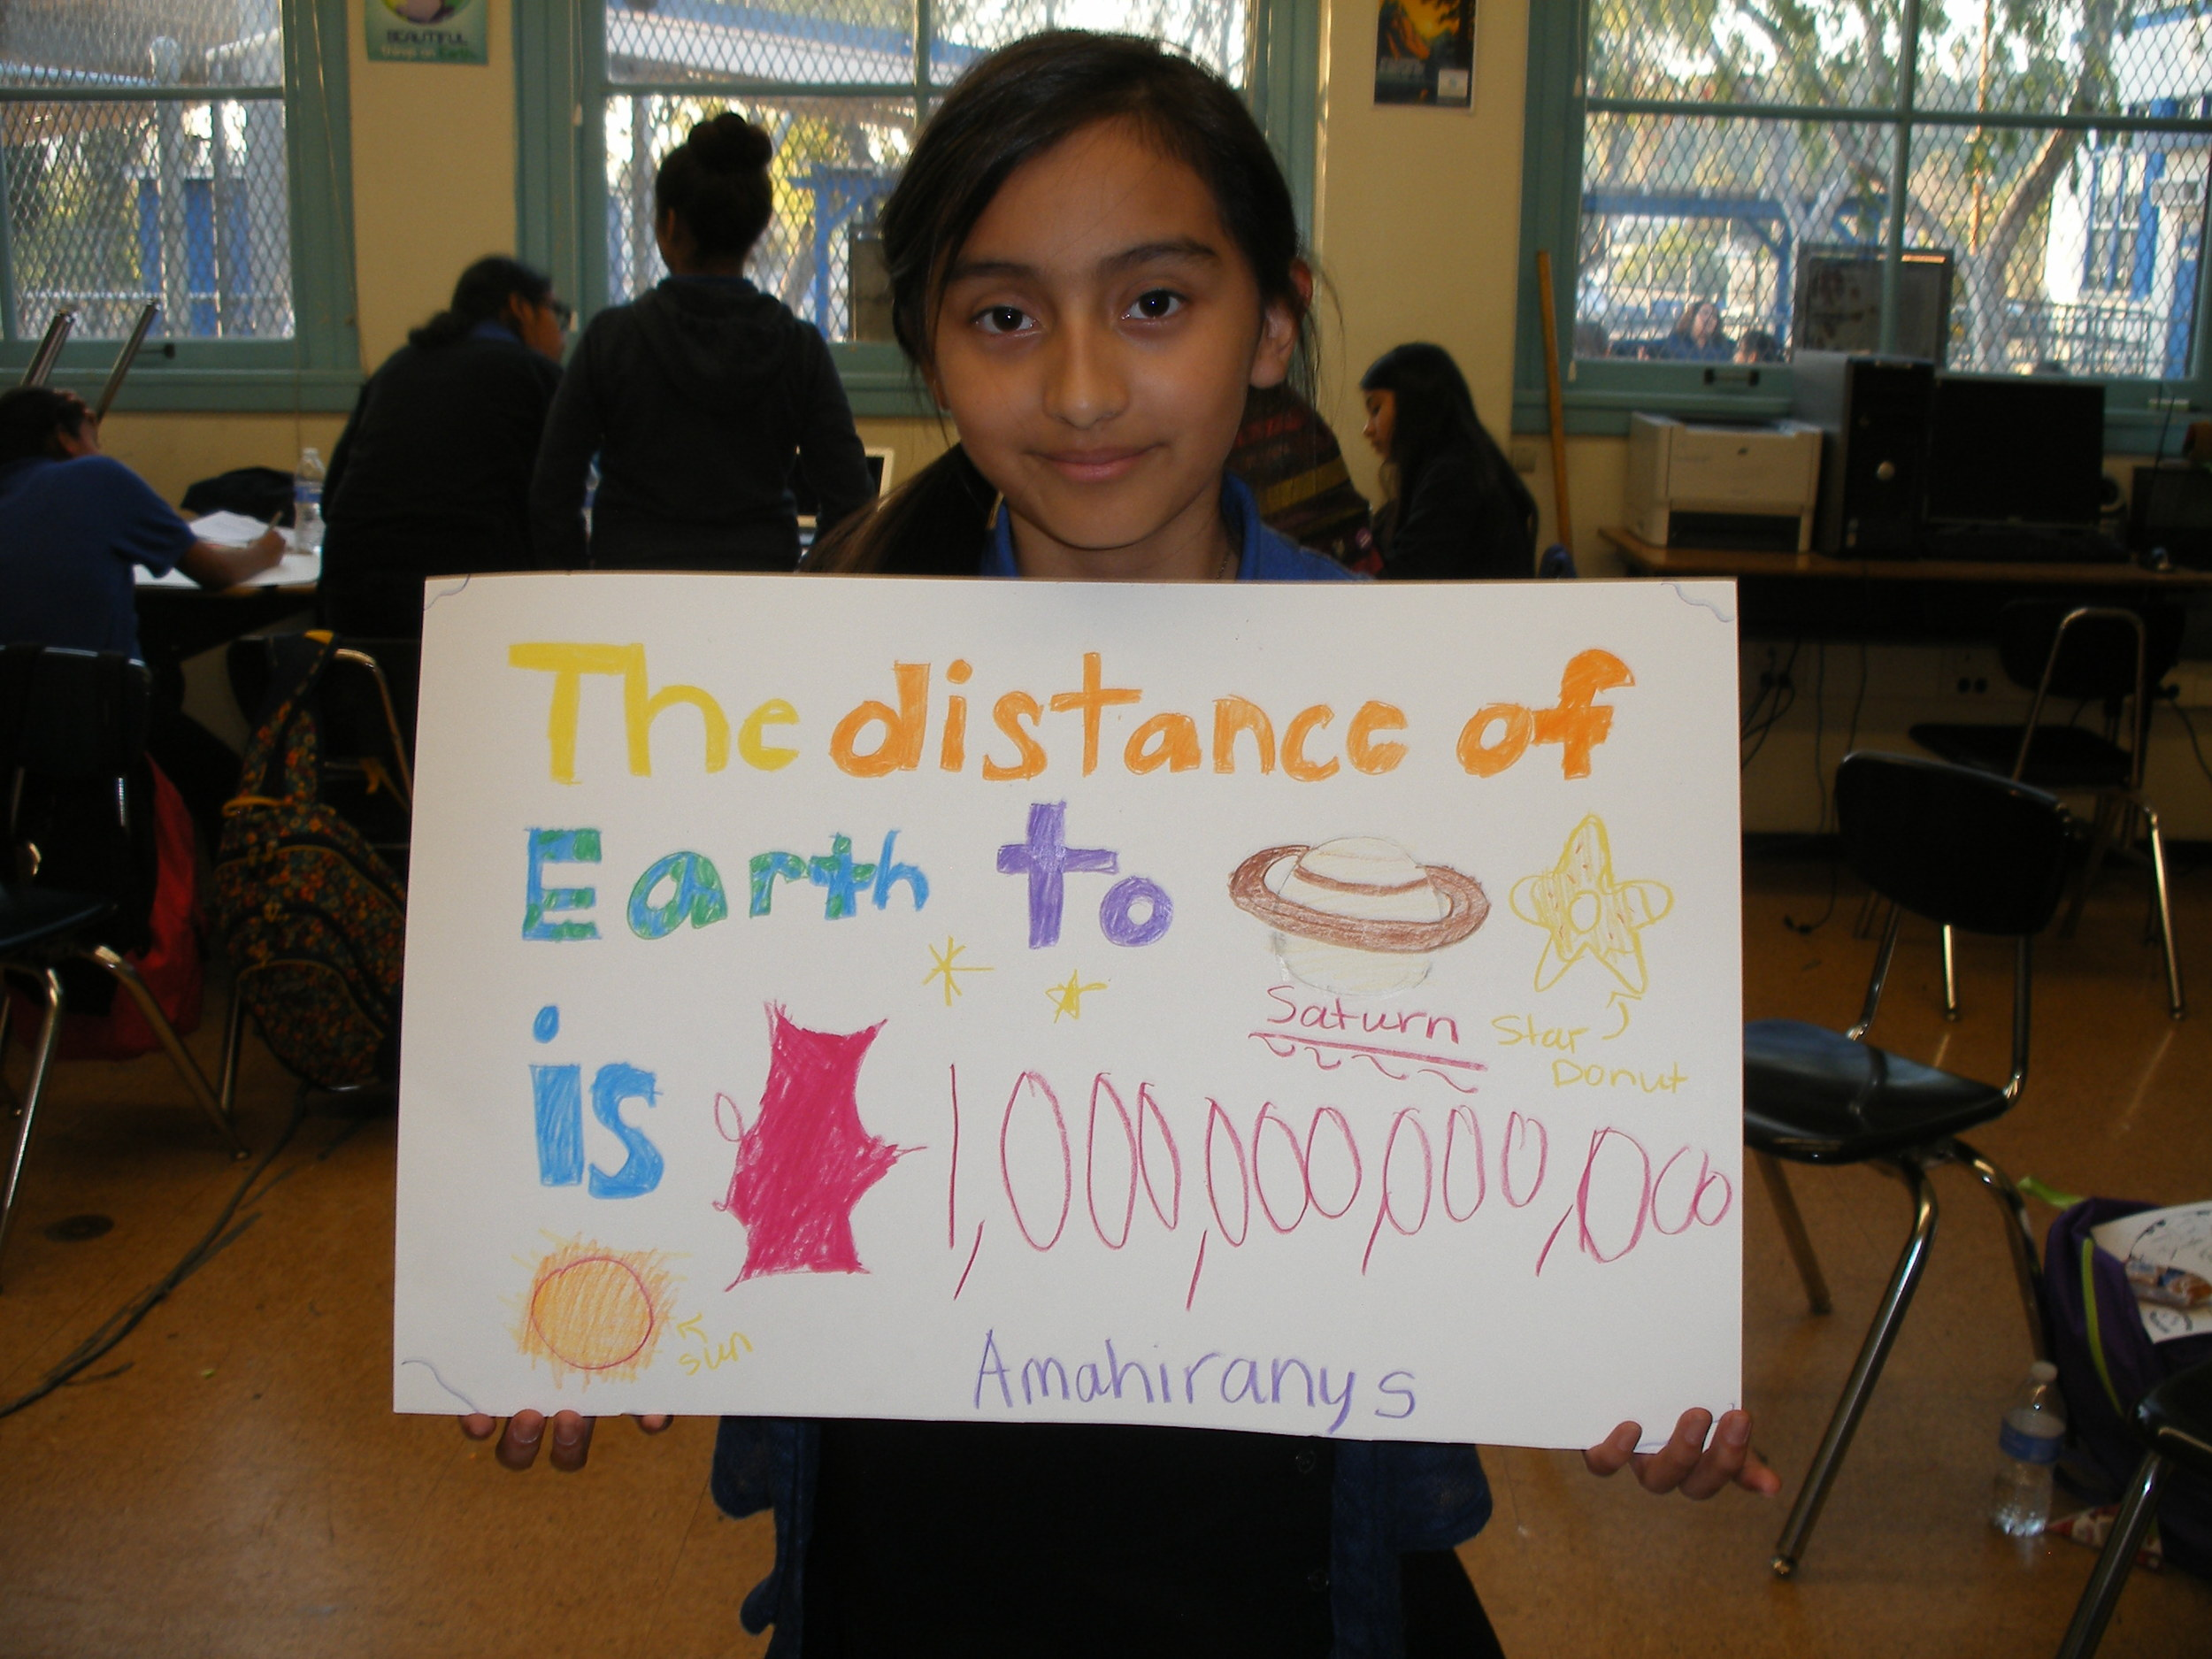 """Amahirany Diaz participates in """"Universe: More Than Meets the Eye"""" workshop at Irving STEAM Magnet Middle School, Eagle Rock, CA, February 2015. Facilitator: Dr. Aomawa Shields"""